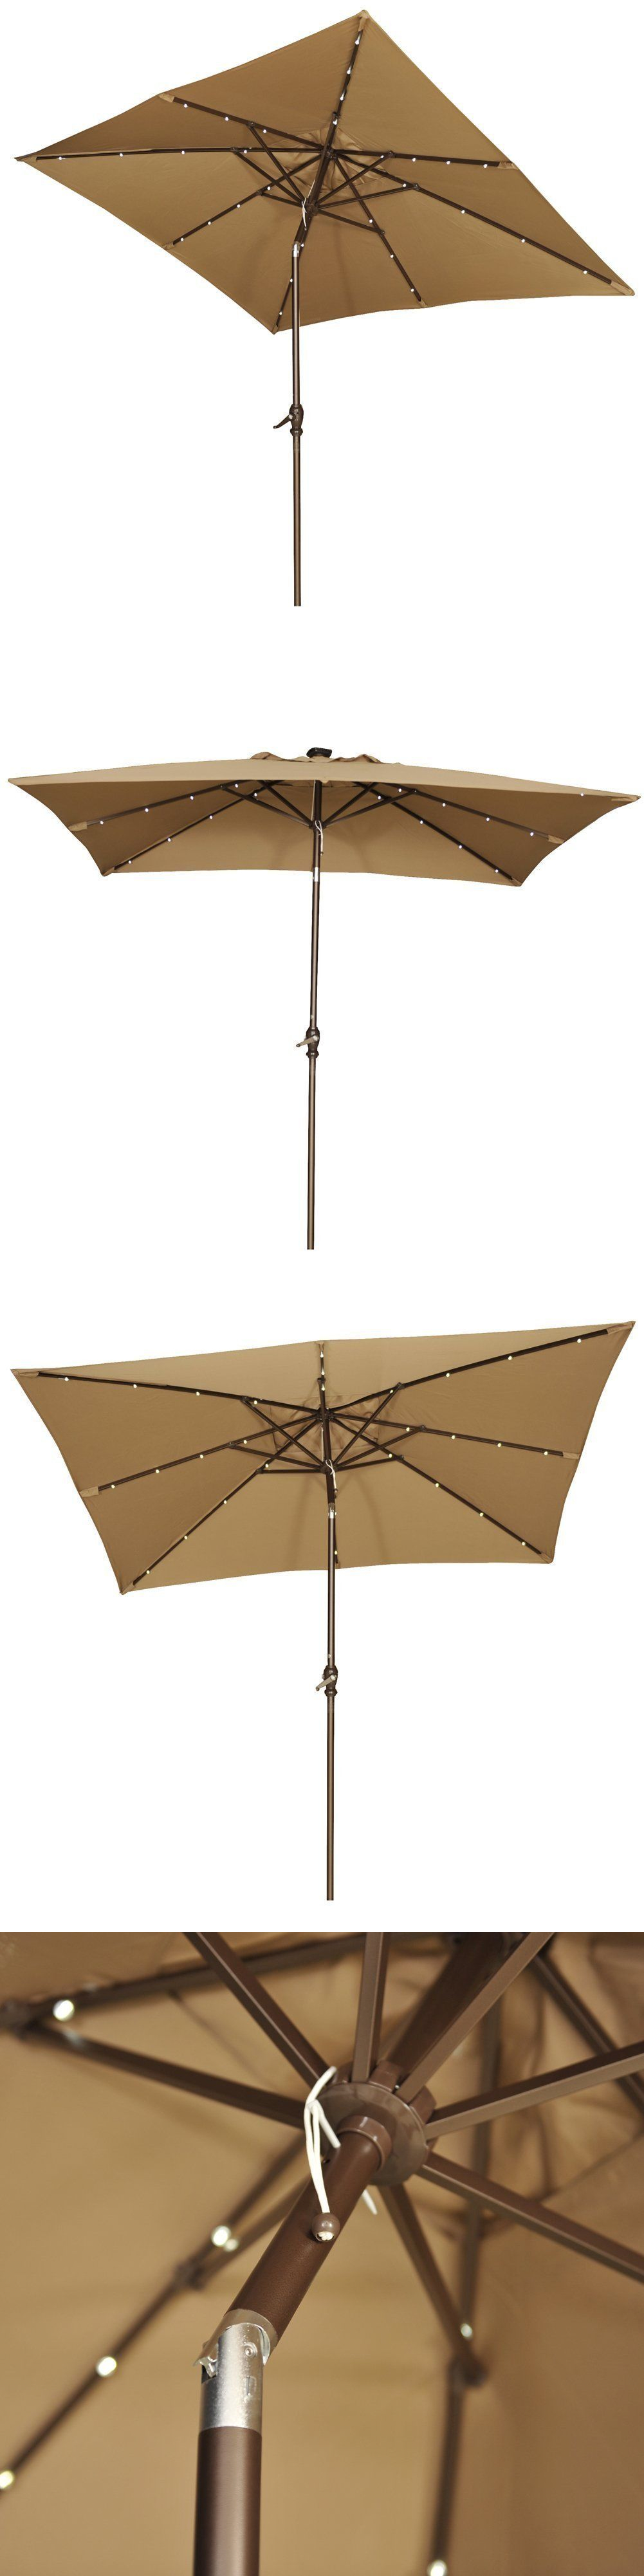 Rectangular Patio Umbrella With Solar Lights Amazing Umbrellas 180998 7X9 Ft Rectangular Patio Umbrella W Solar Powered Design Inspiration